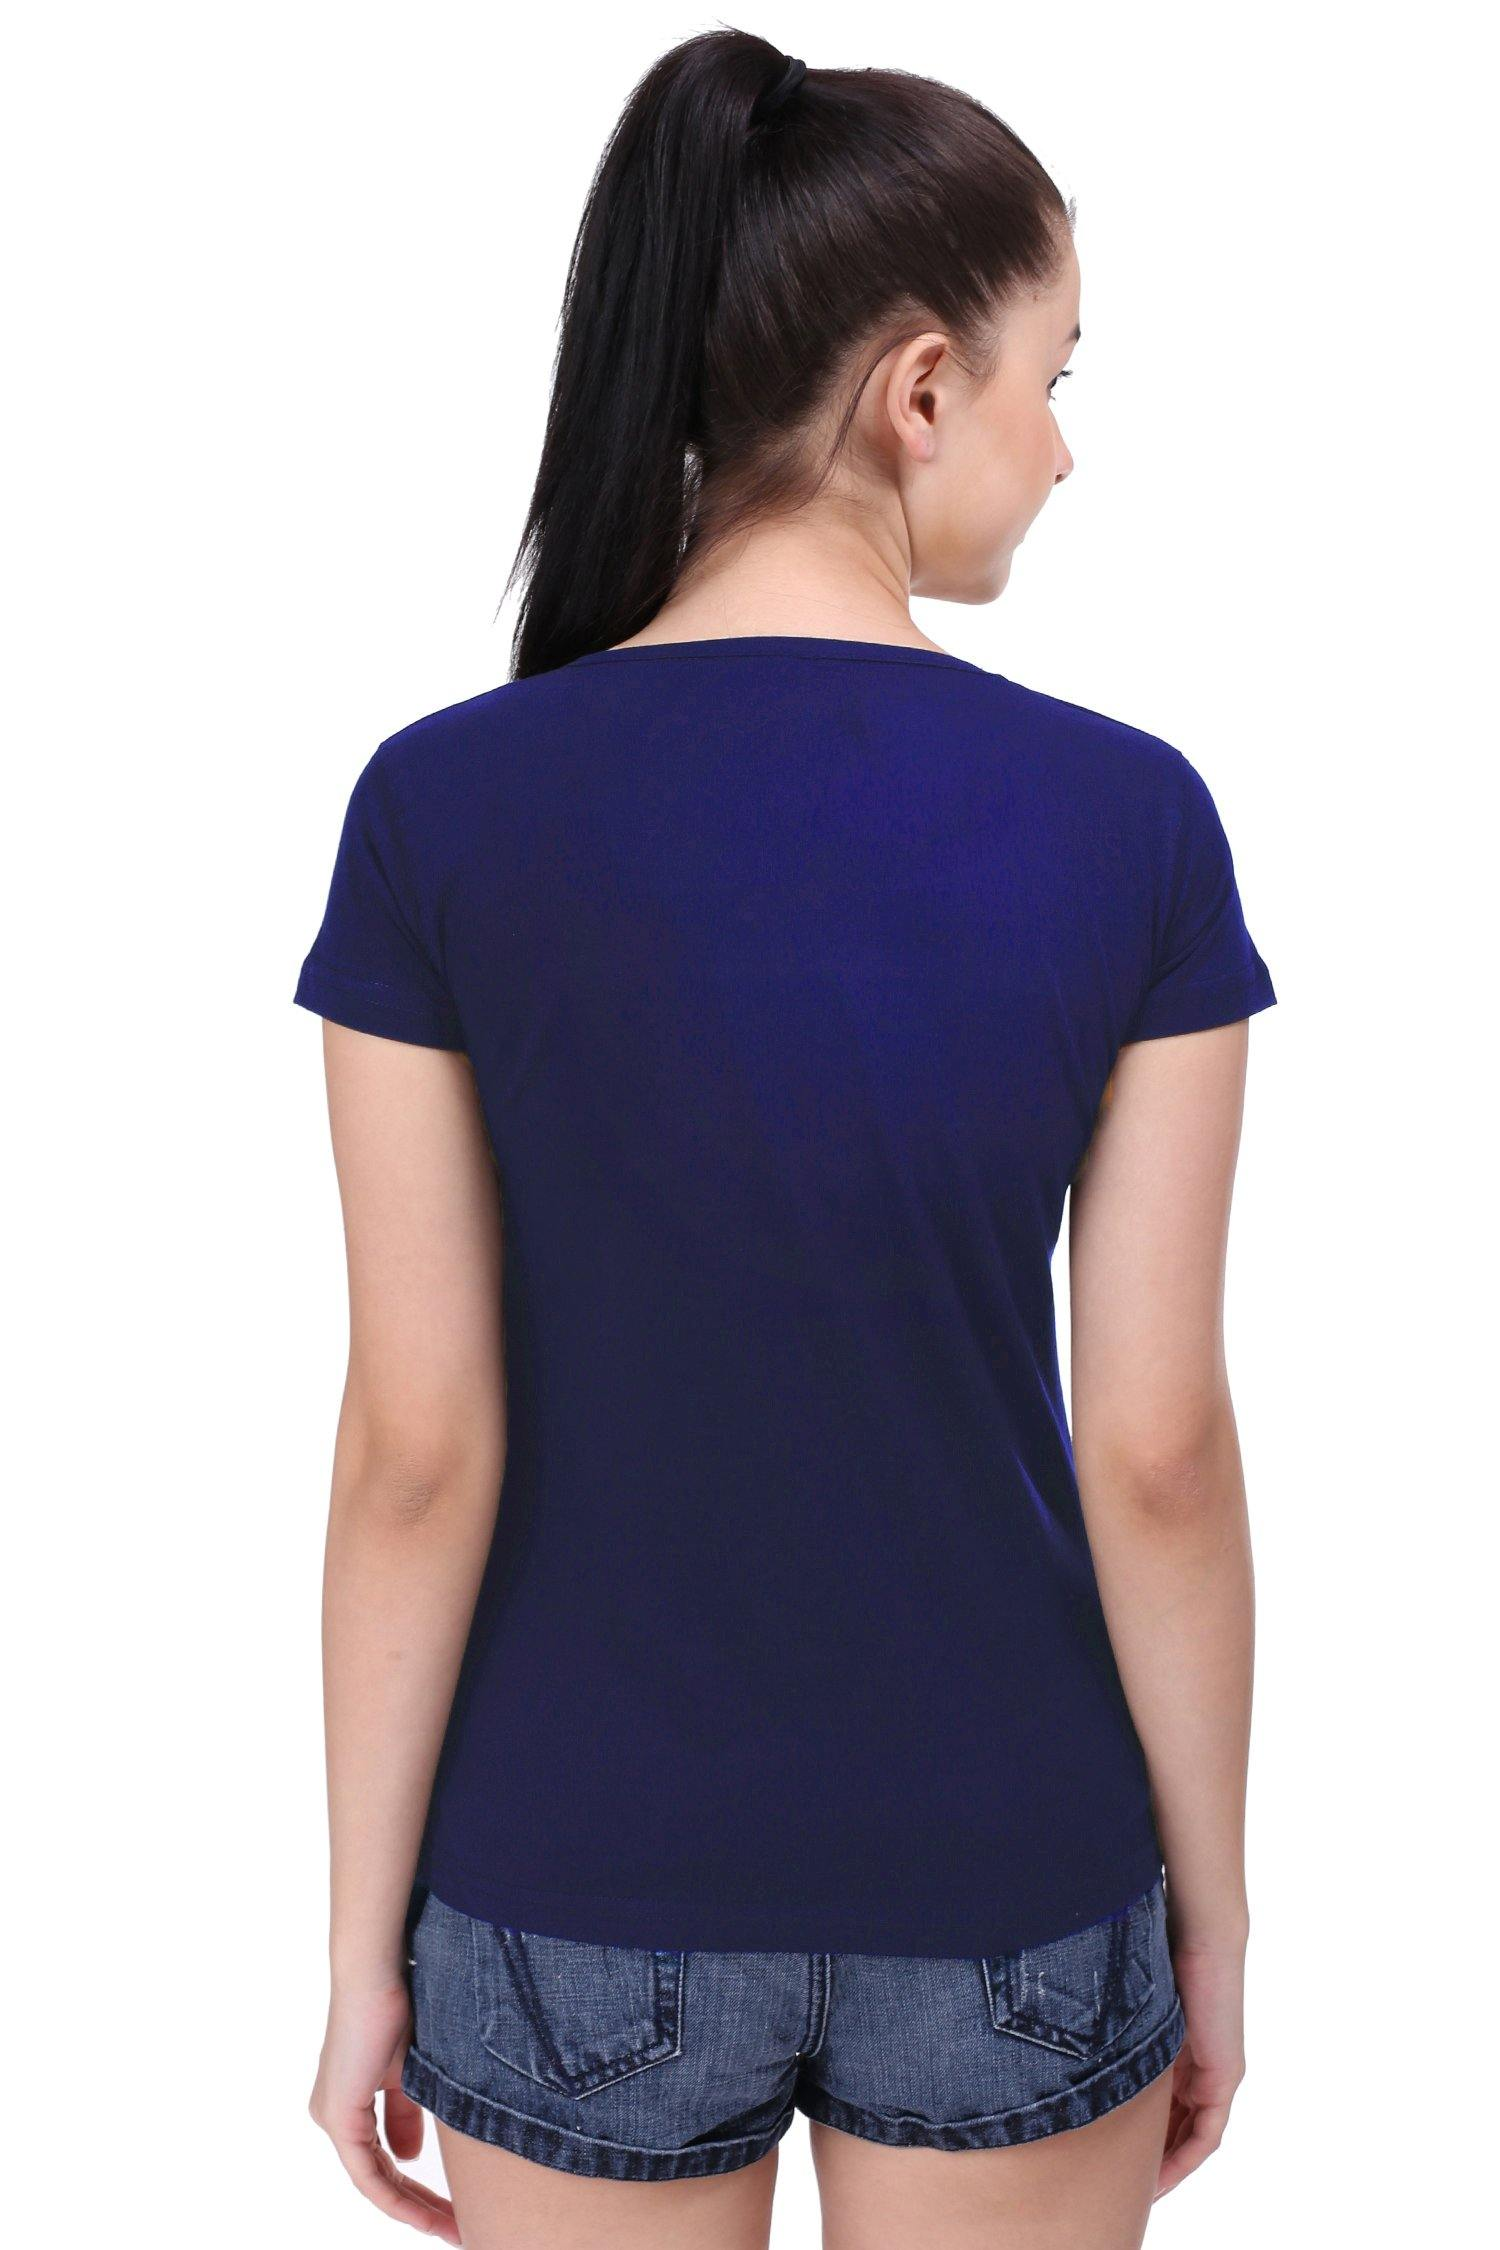 Premium Quality Plain Navy Blue Color Half Sleeve T-Shirt For Woman - thewardrobe-store-in